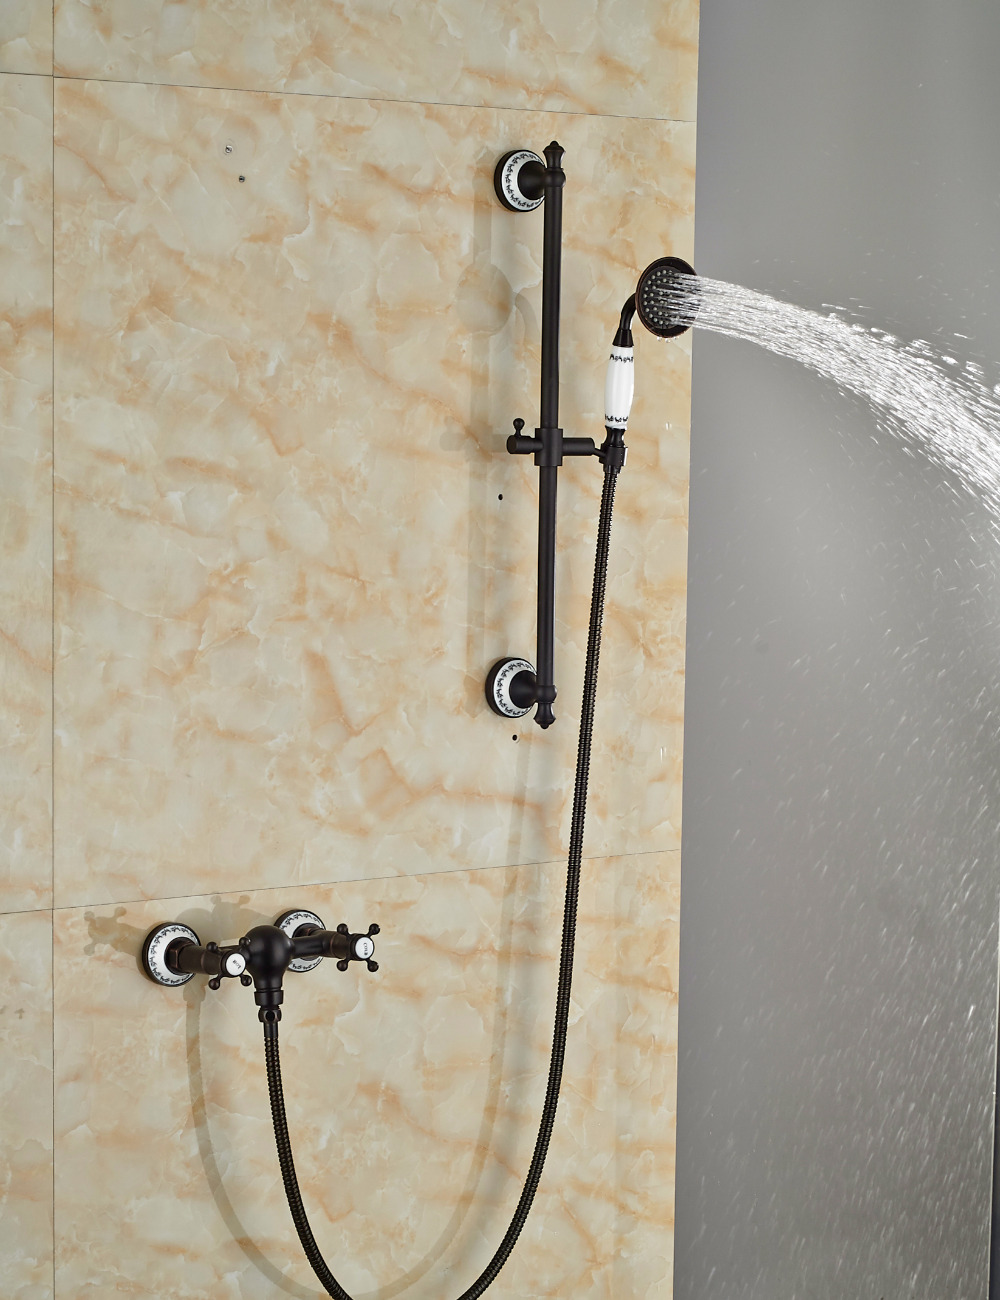 Wholesale And Retail Solid Brass Oil Rubbed Bronze Bathroom Tub Faucet Valve Mixer Tap W/ Hand Shower Sprayer